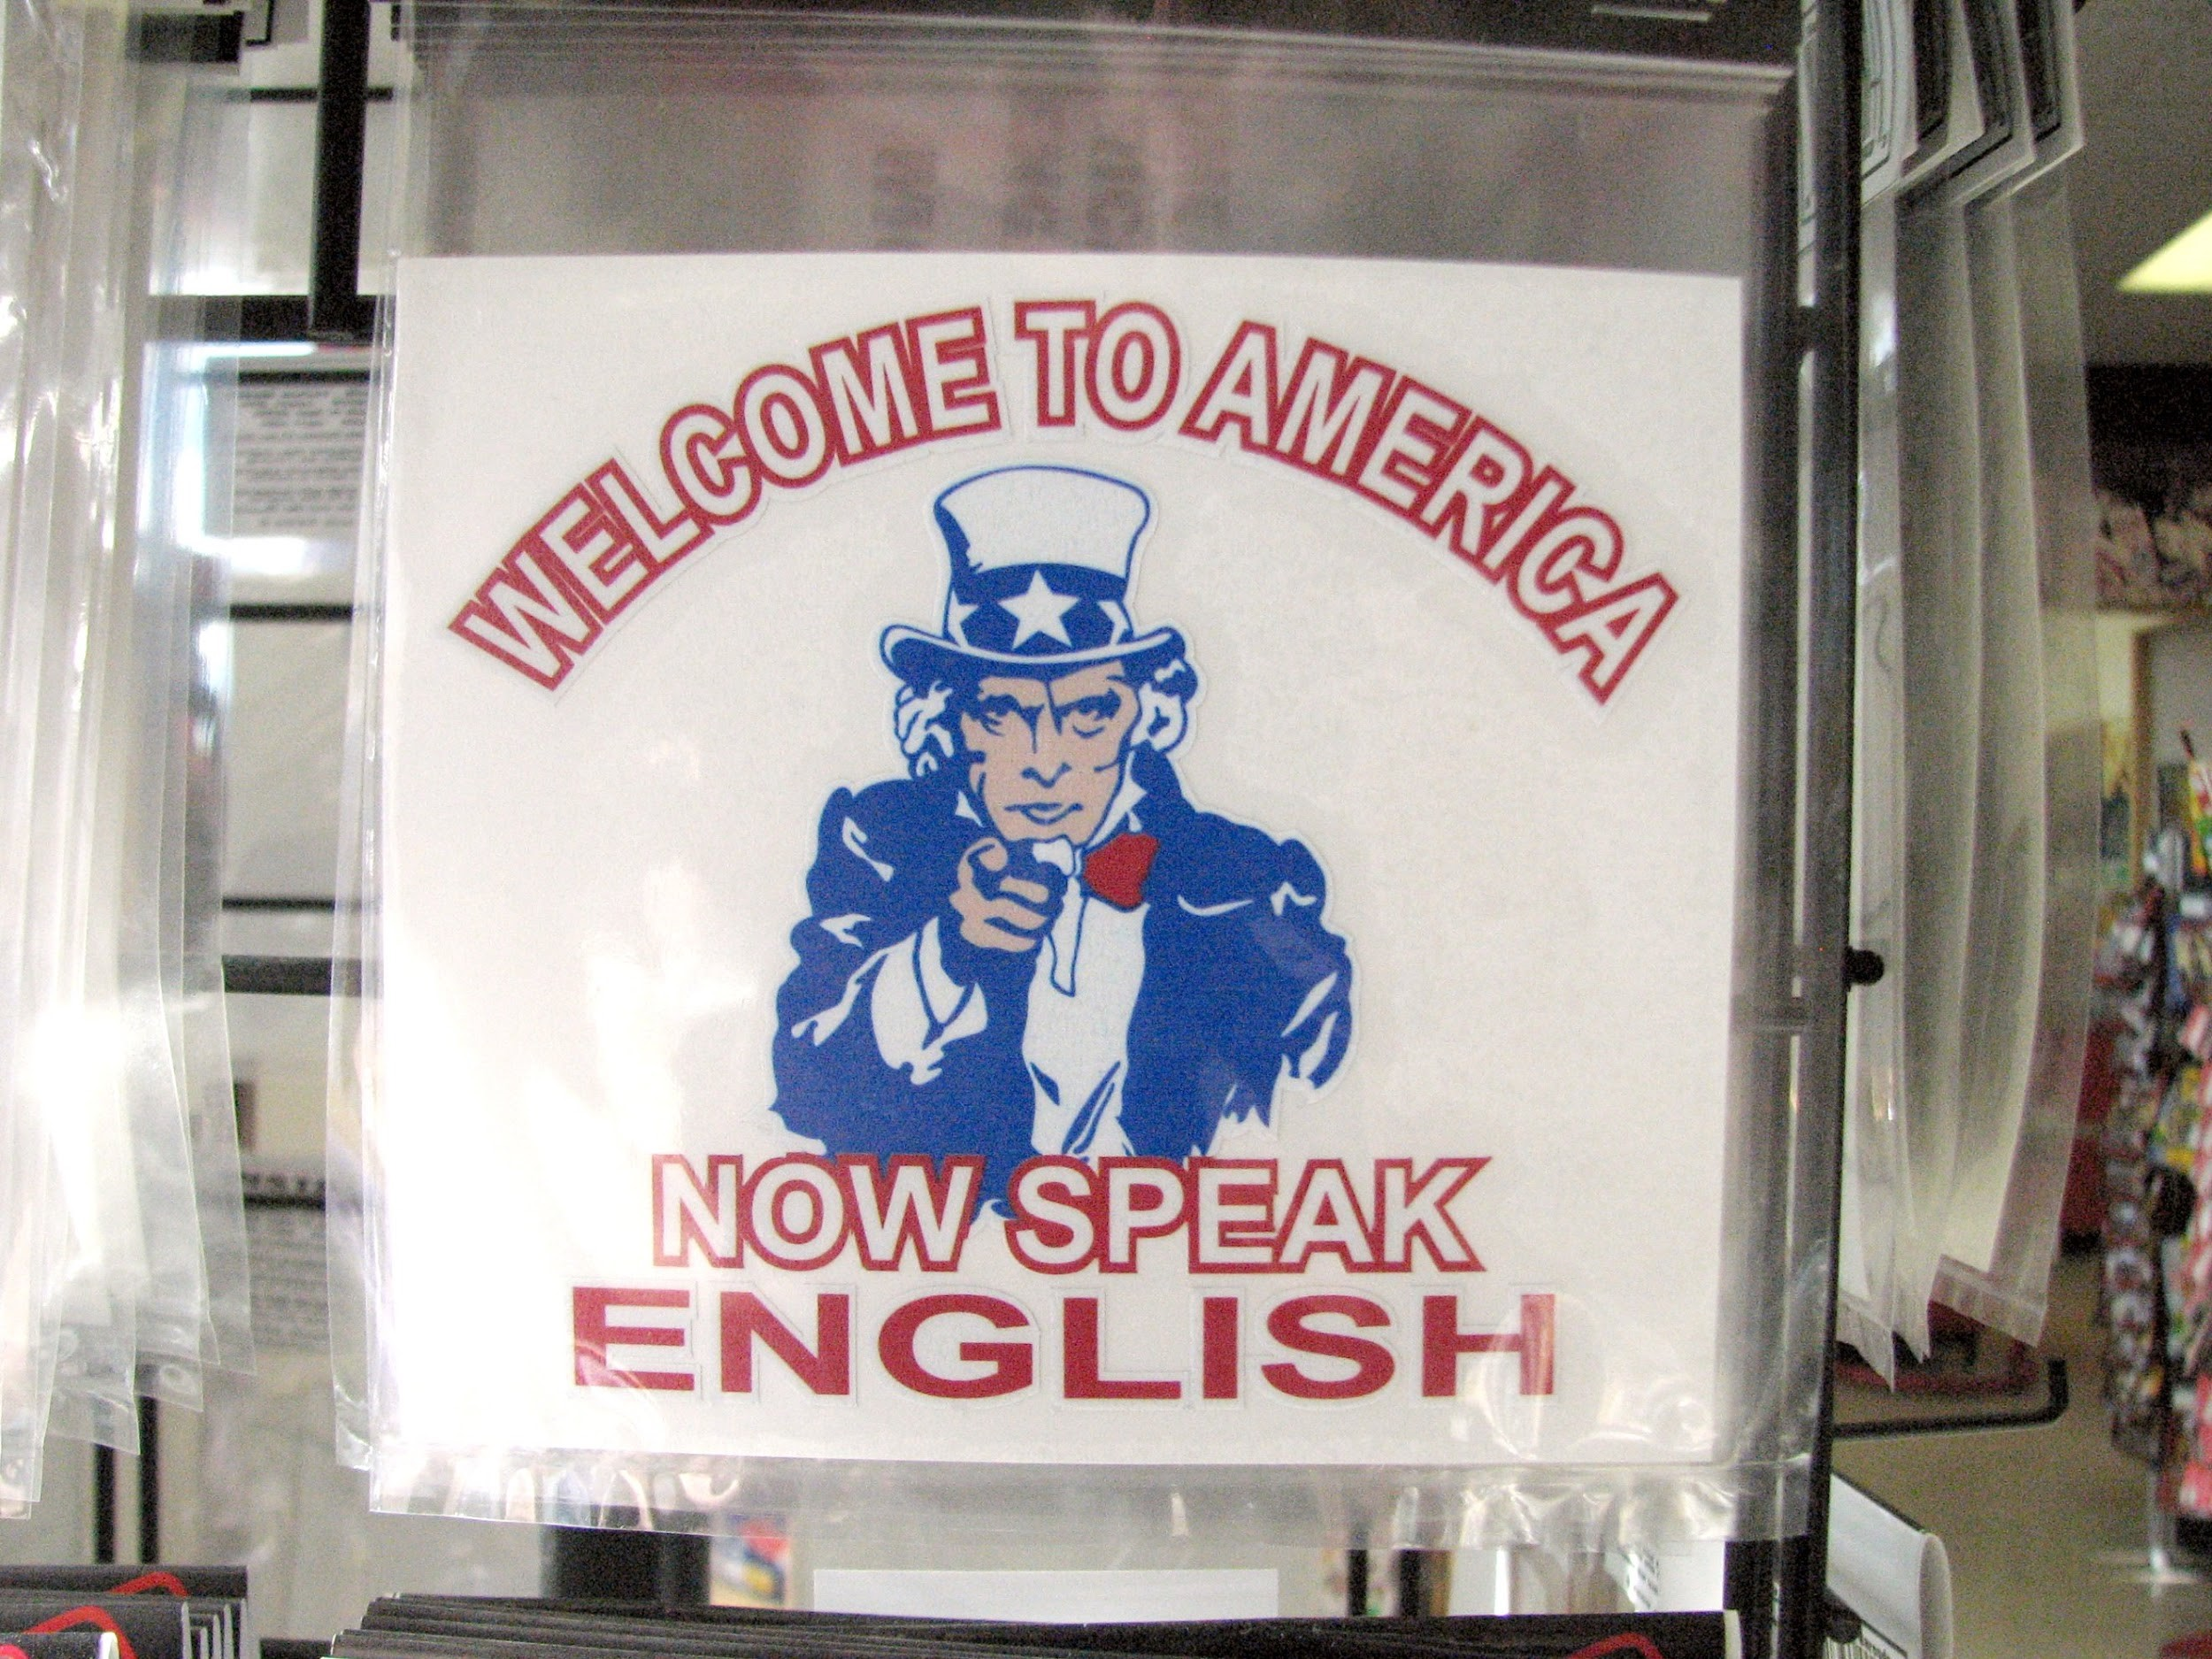 A bumper sticker demanding that immigrants speak English reflects a perception that recent immigrants have not assimilated into American culture